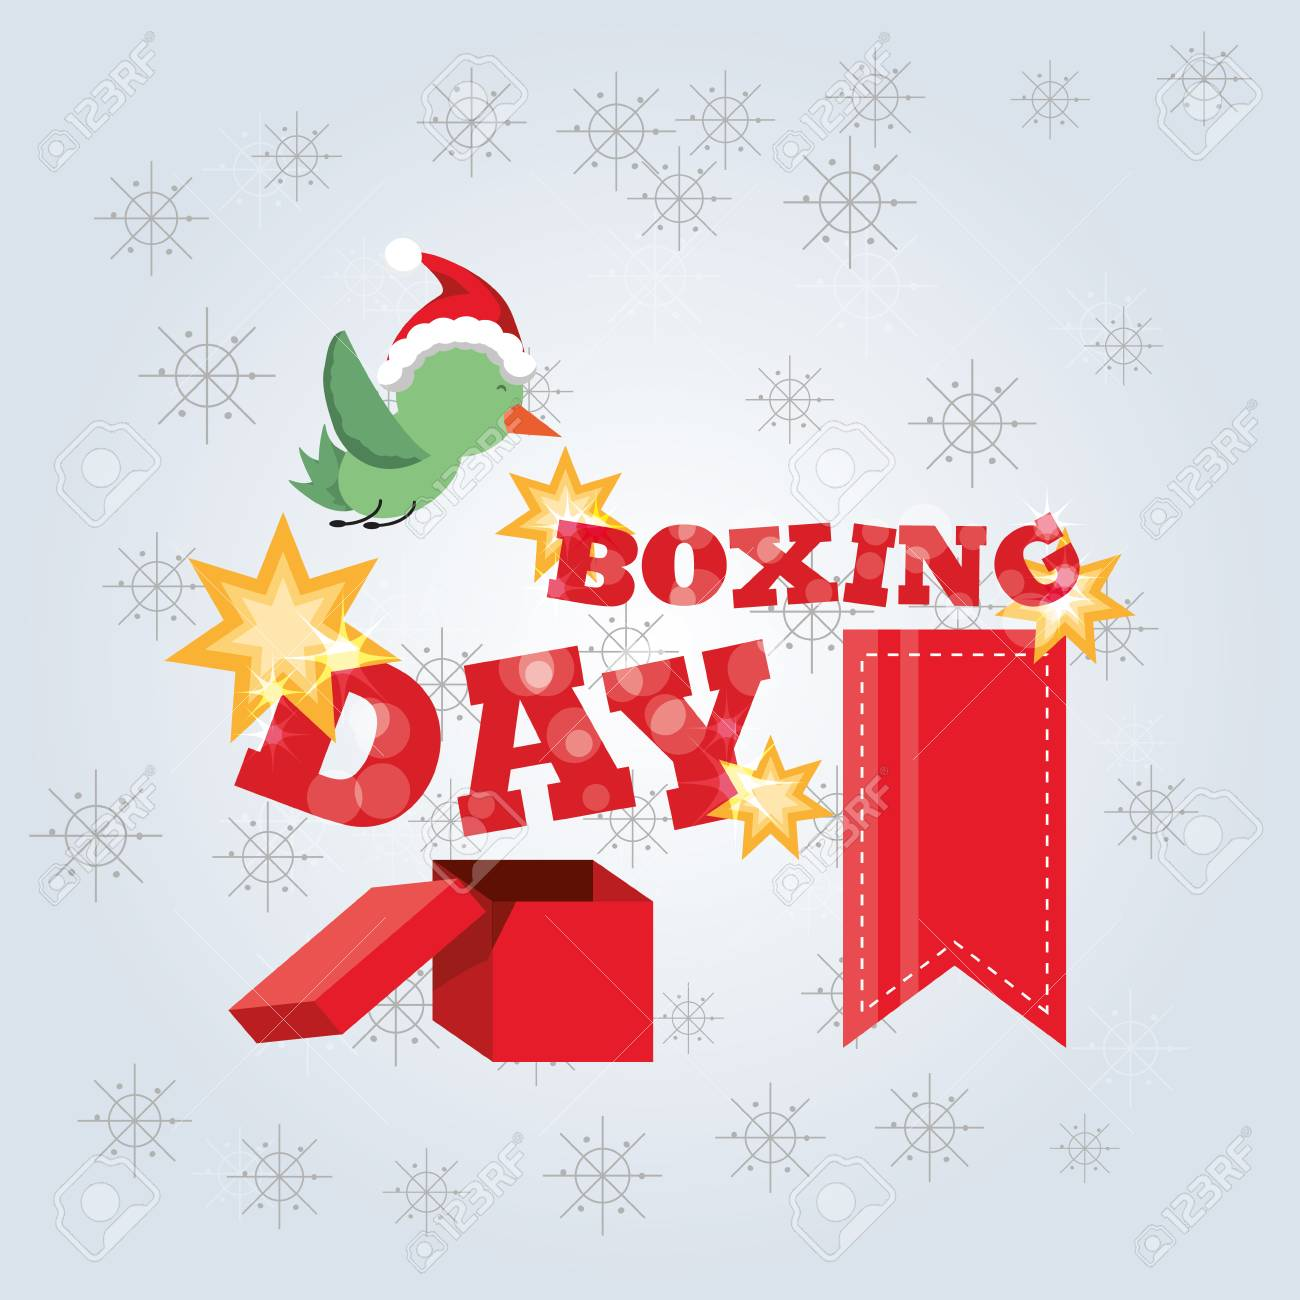 Cartoon day Boxing pictures advise dress for everyday in 2019